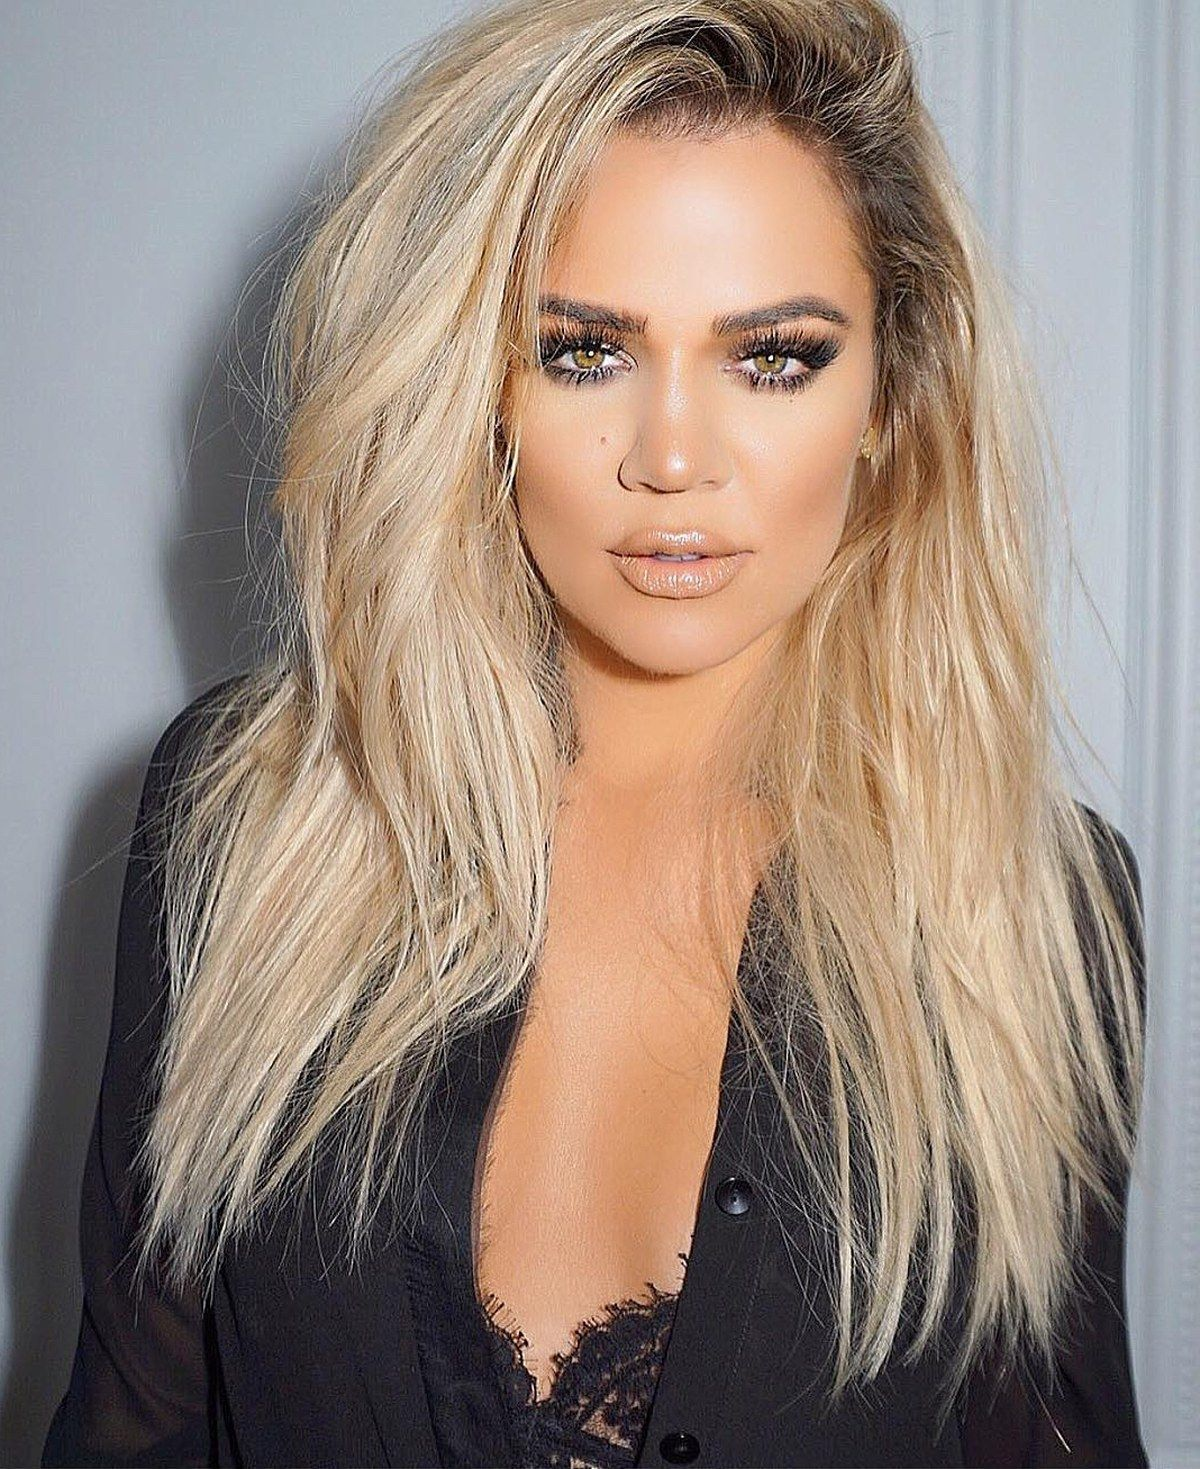 With so many hair-care items on the market, proclaiming that something is your favorite is a big deal. Is like an unofficial marriage—you put it above all others. But when you're Khloé Kardashian, giving your stamp of approval is huge.